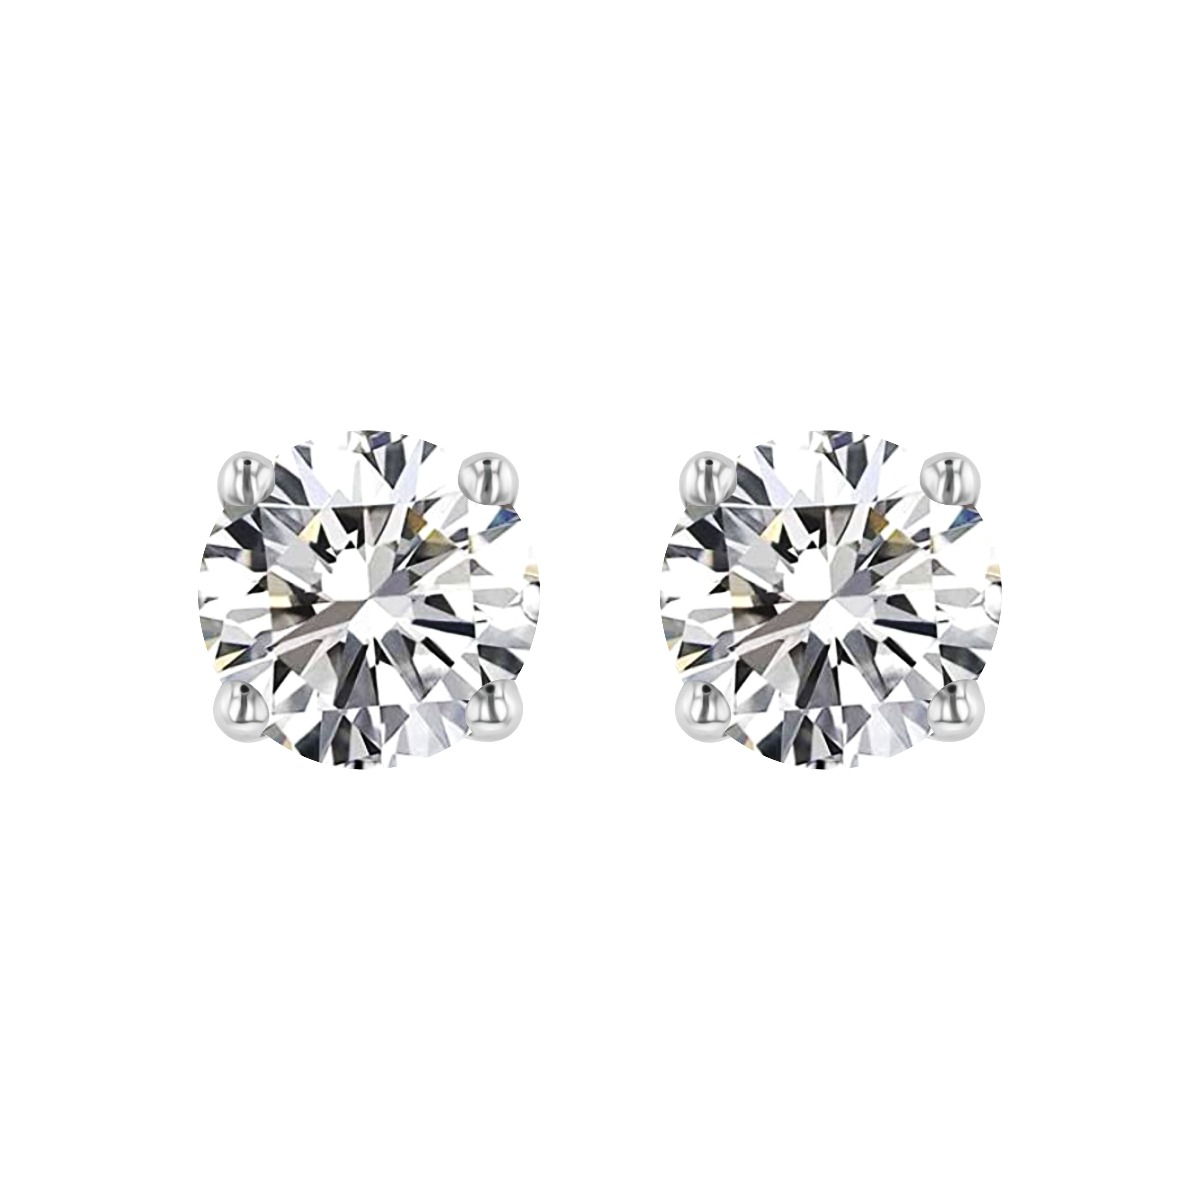 Radiance Collection 1.43ct tw. Round Diamond Stud Earrings | 18K White Gold